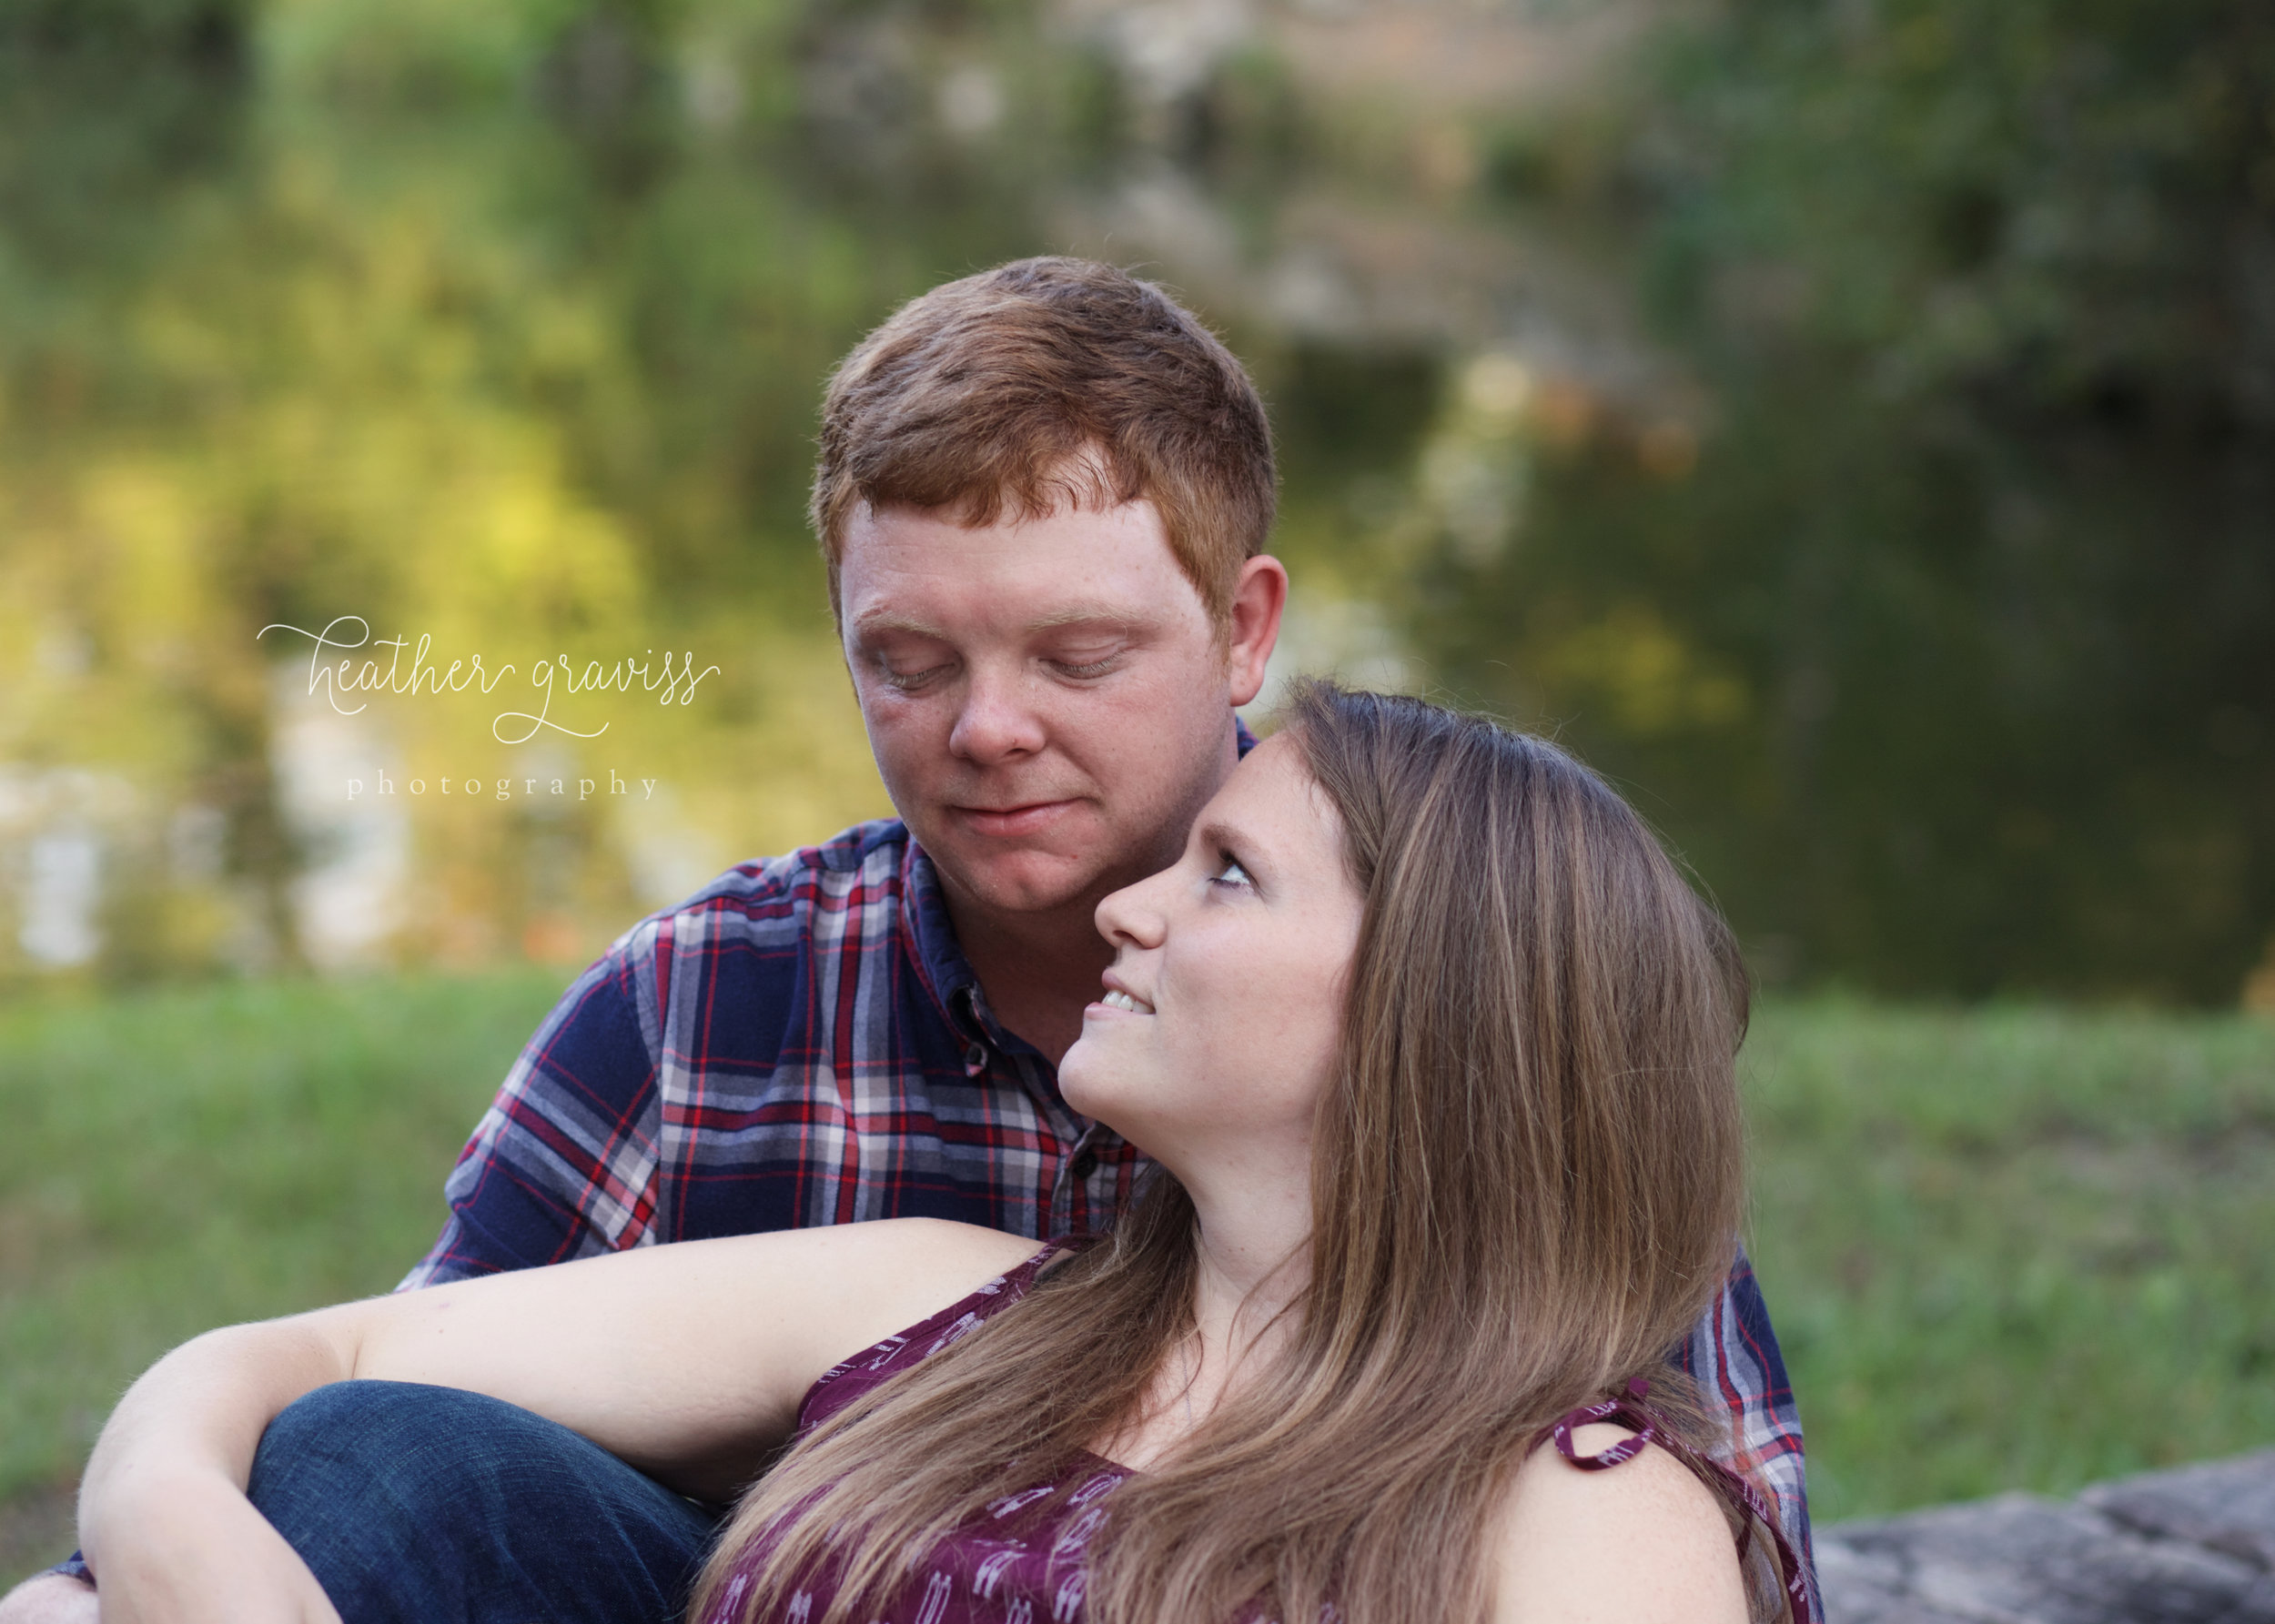 nashville middle tn engagement photographer 279.jpg